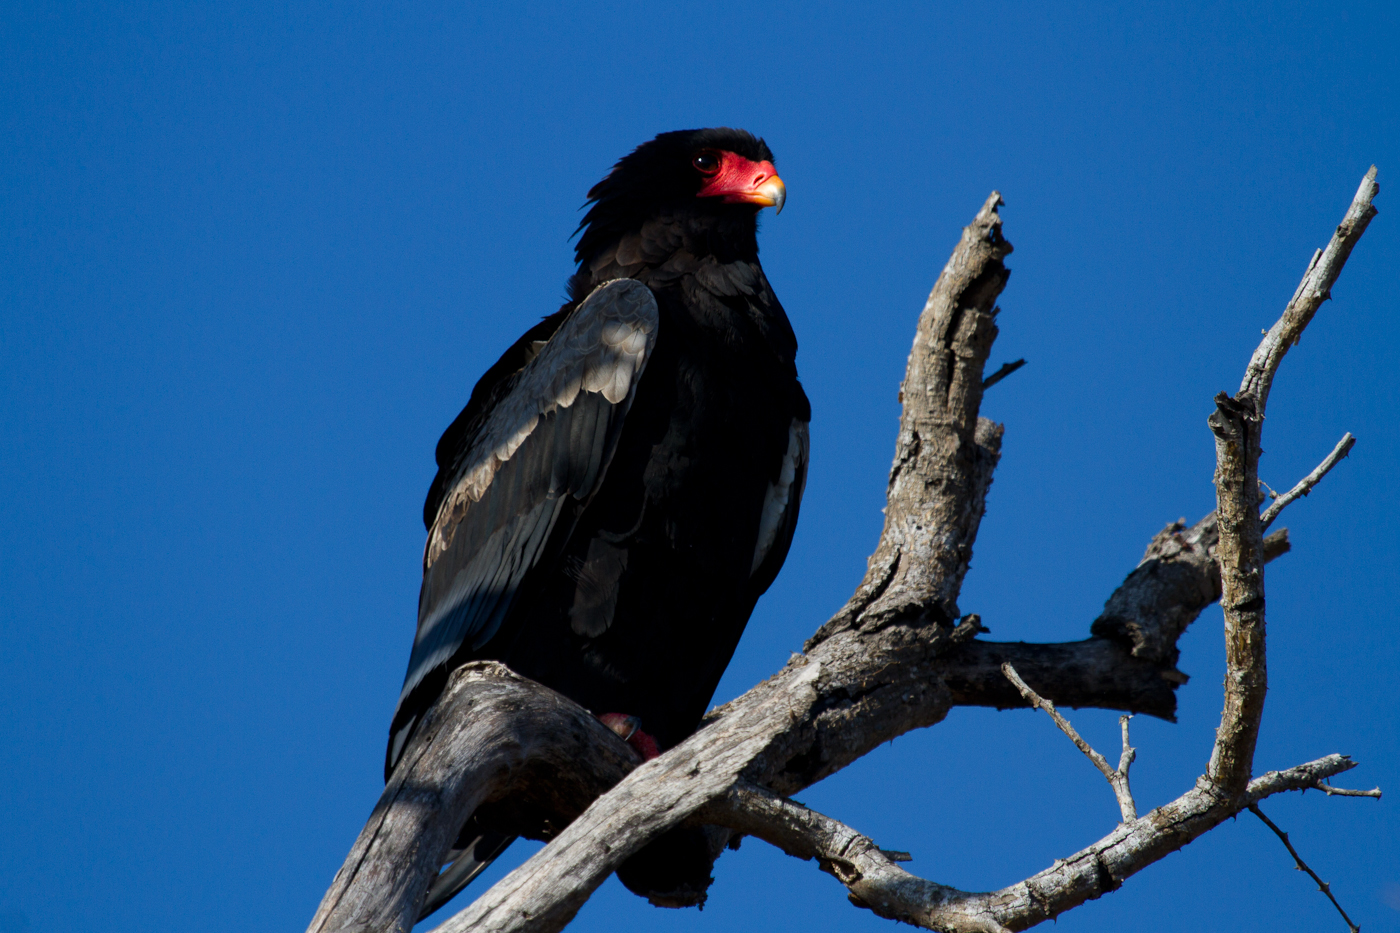 The blue of the sky in this picture was really the norm during winter in South Africa. The Bateleur looks good in blue.